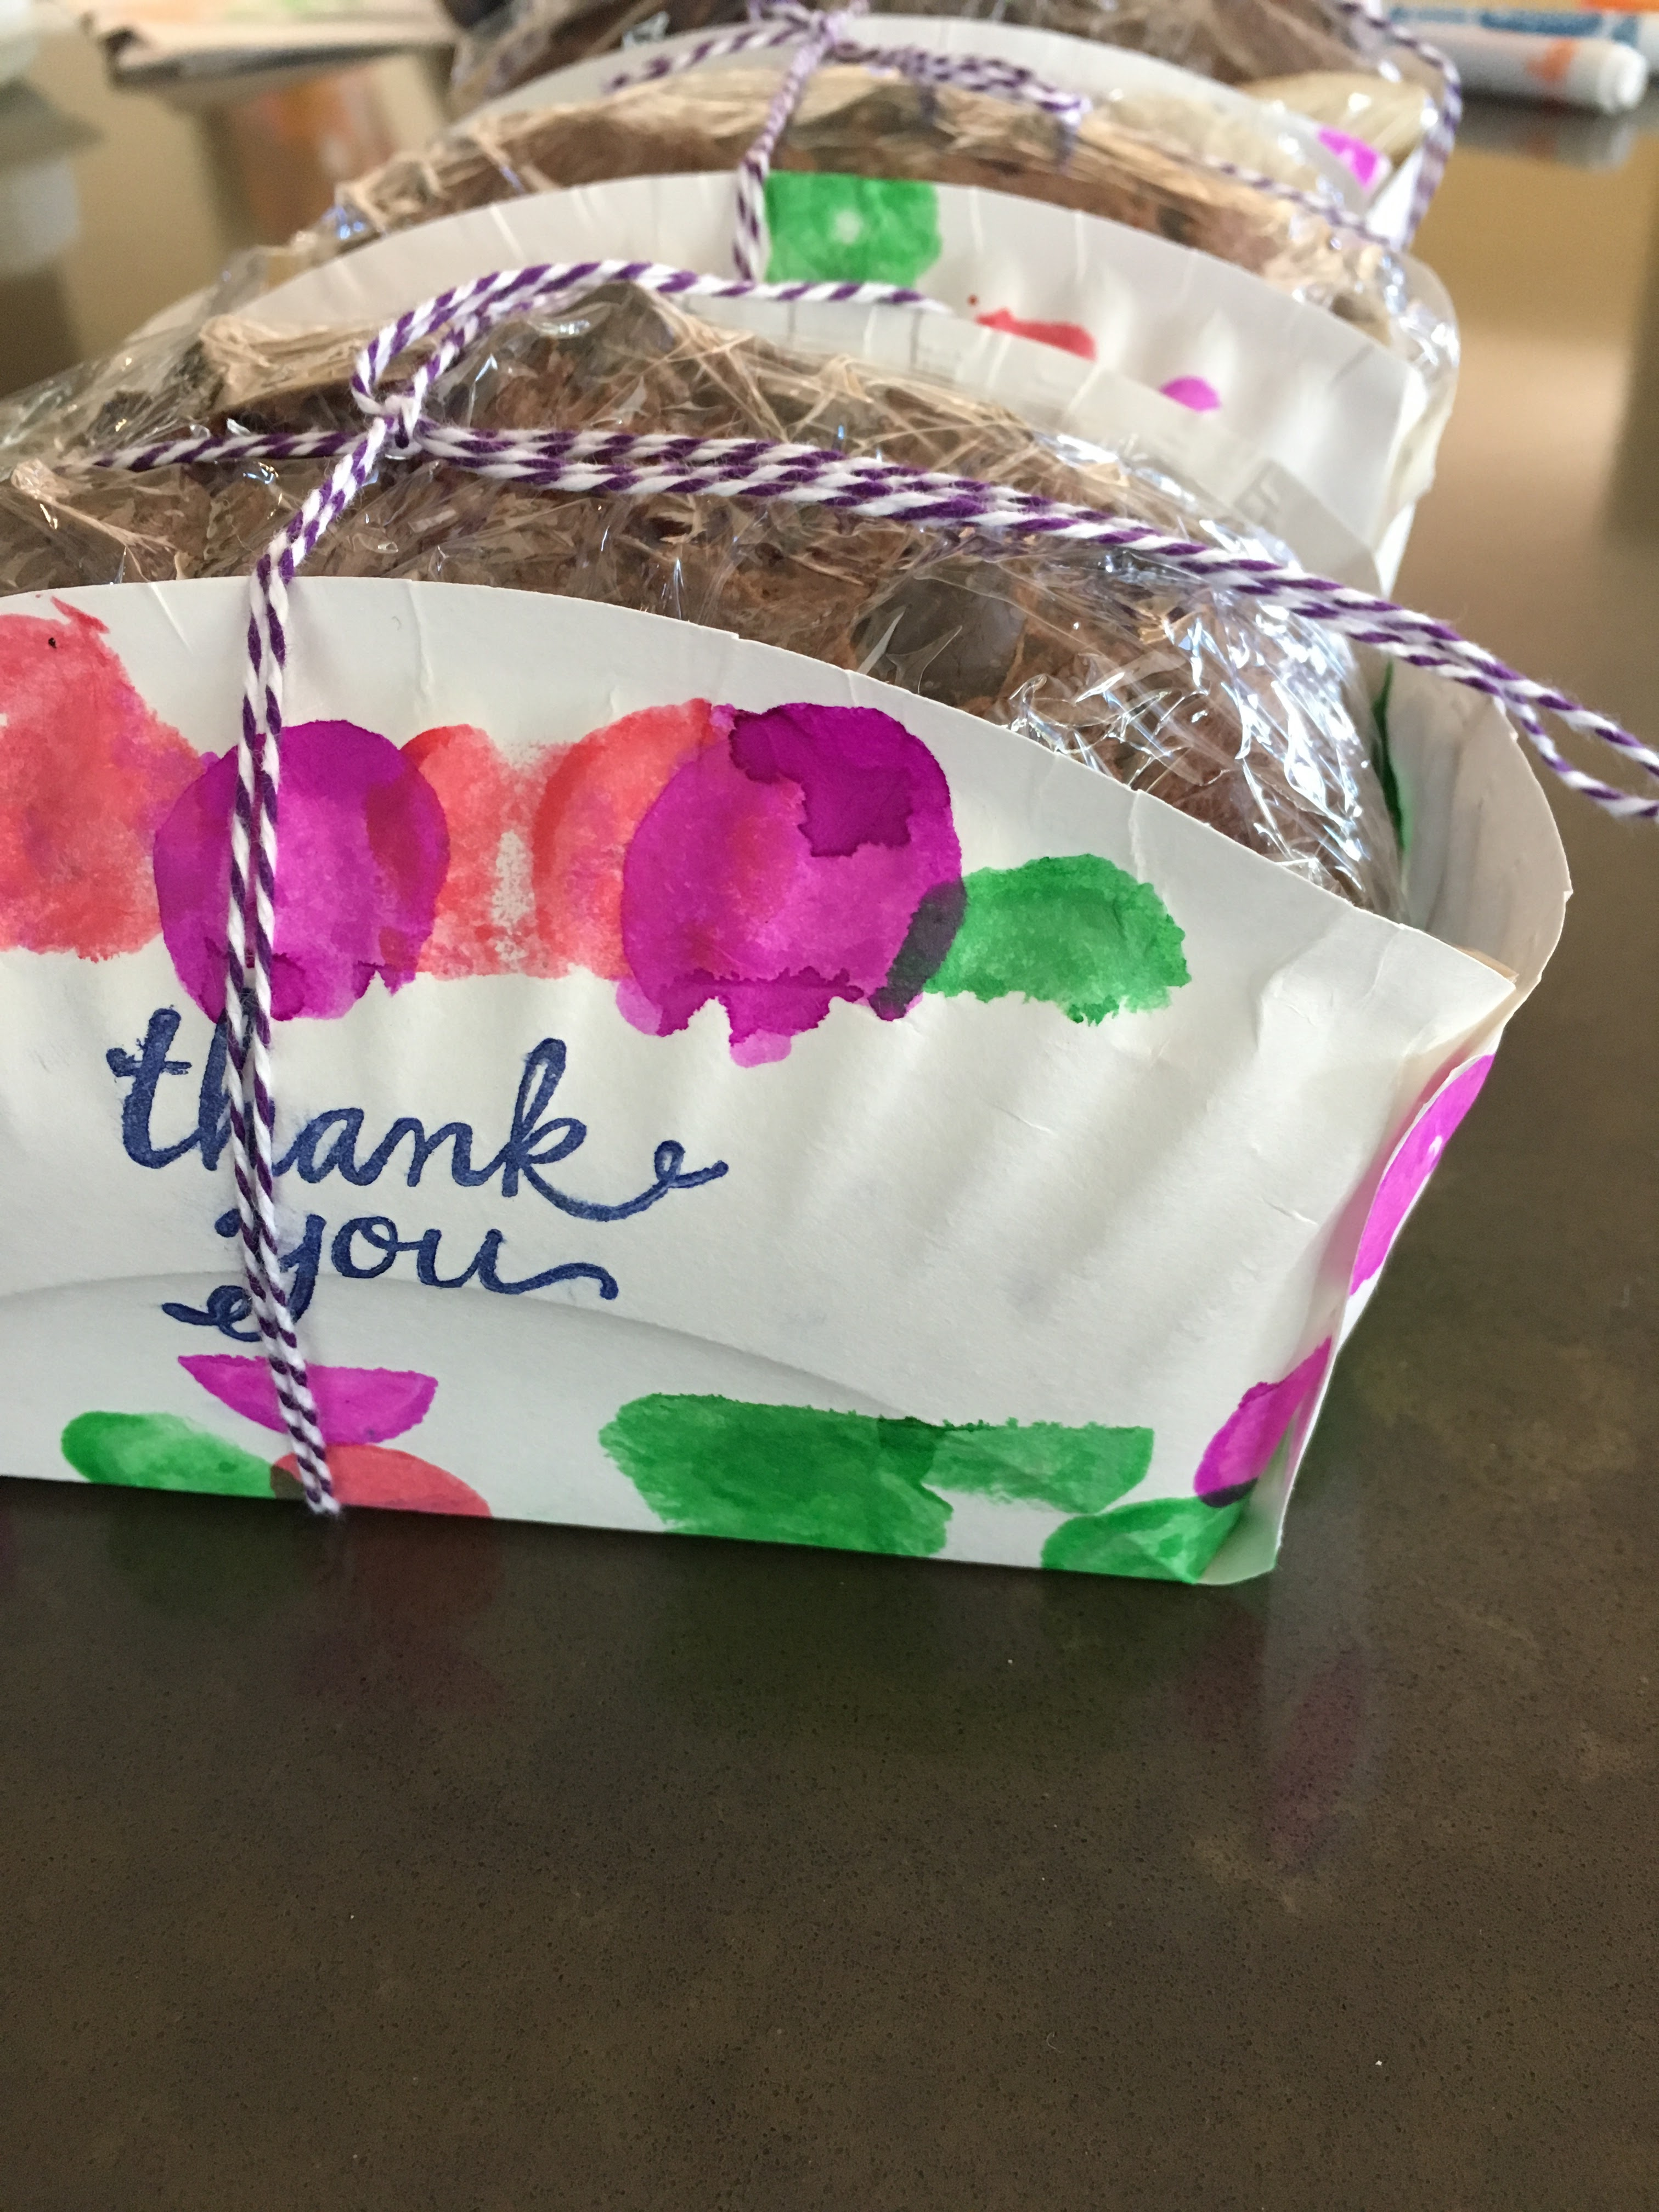 Paper Plate Basket For Home Baked Goodies A Thank You